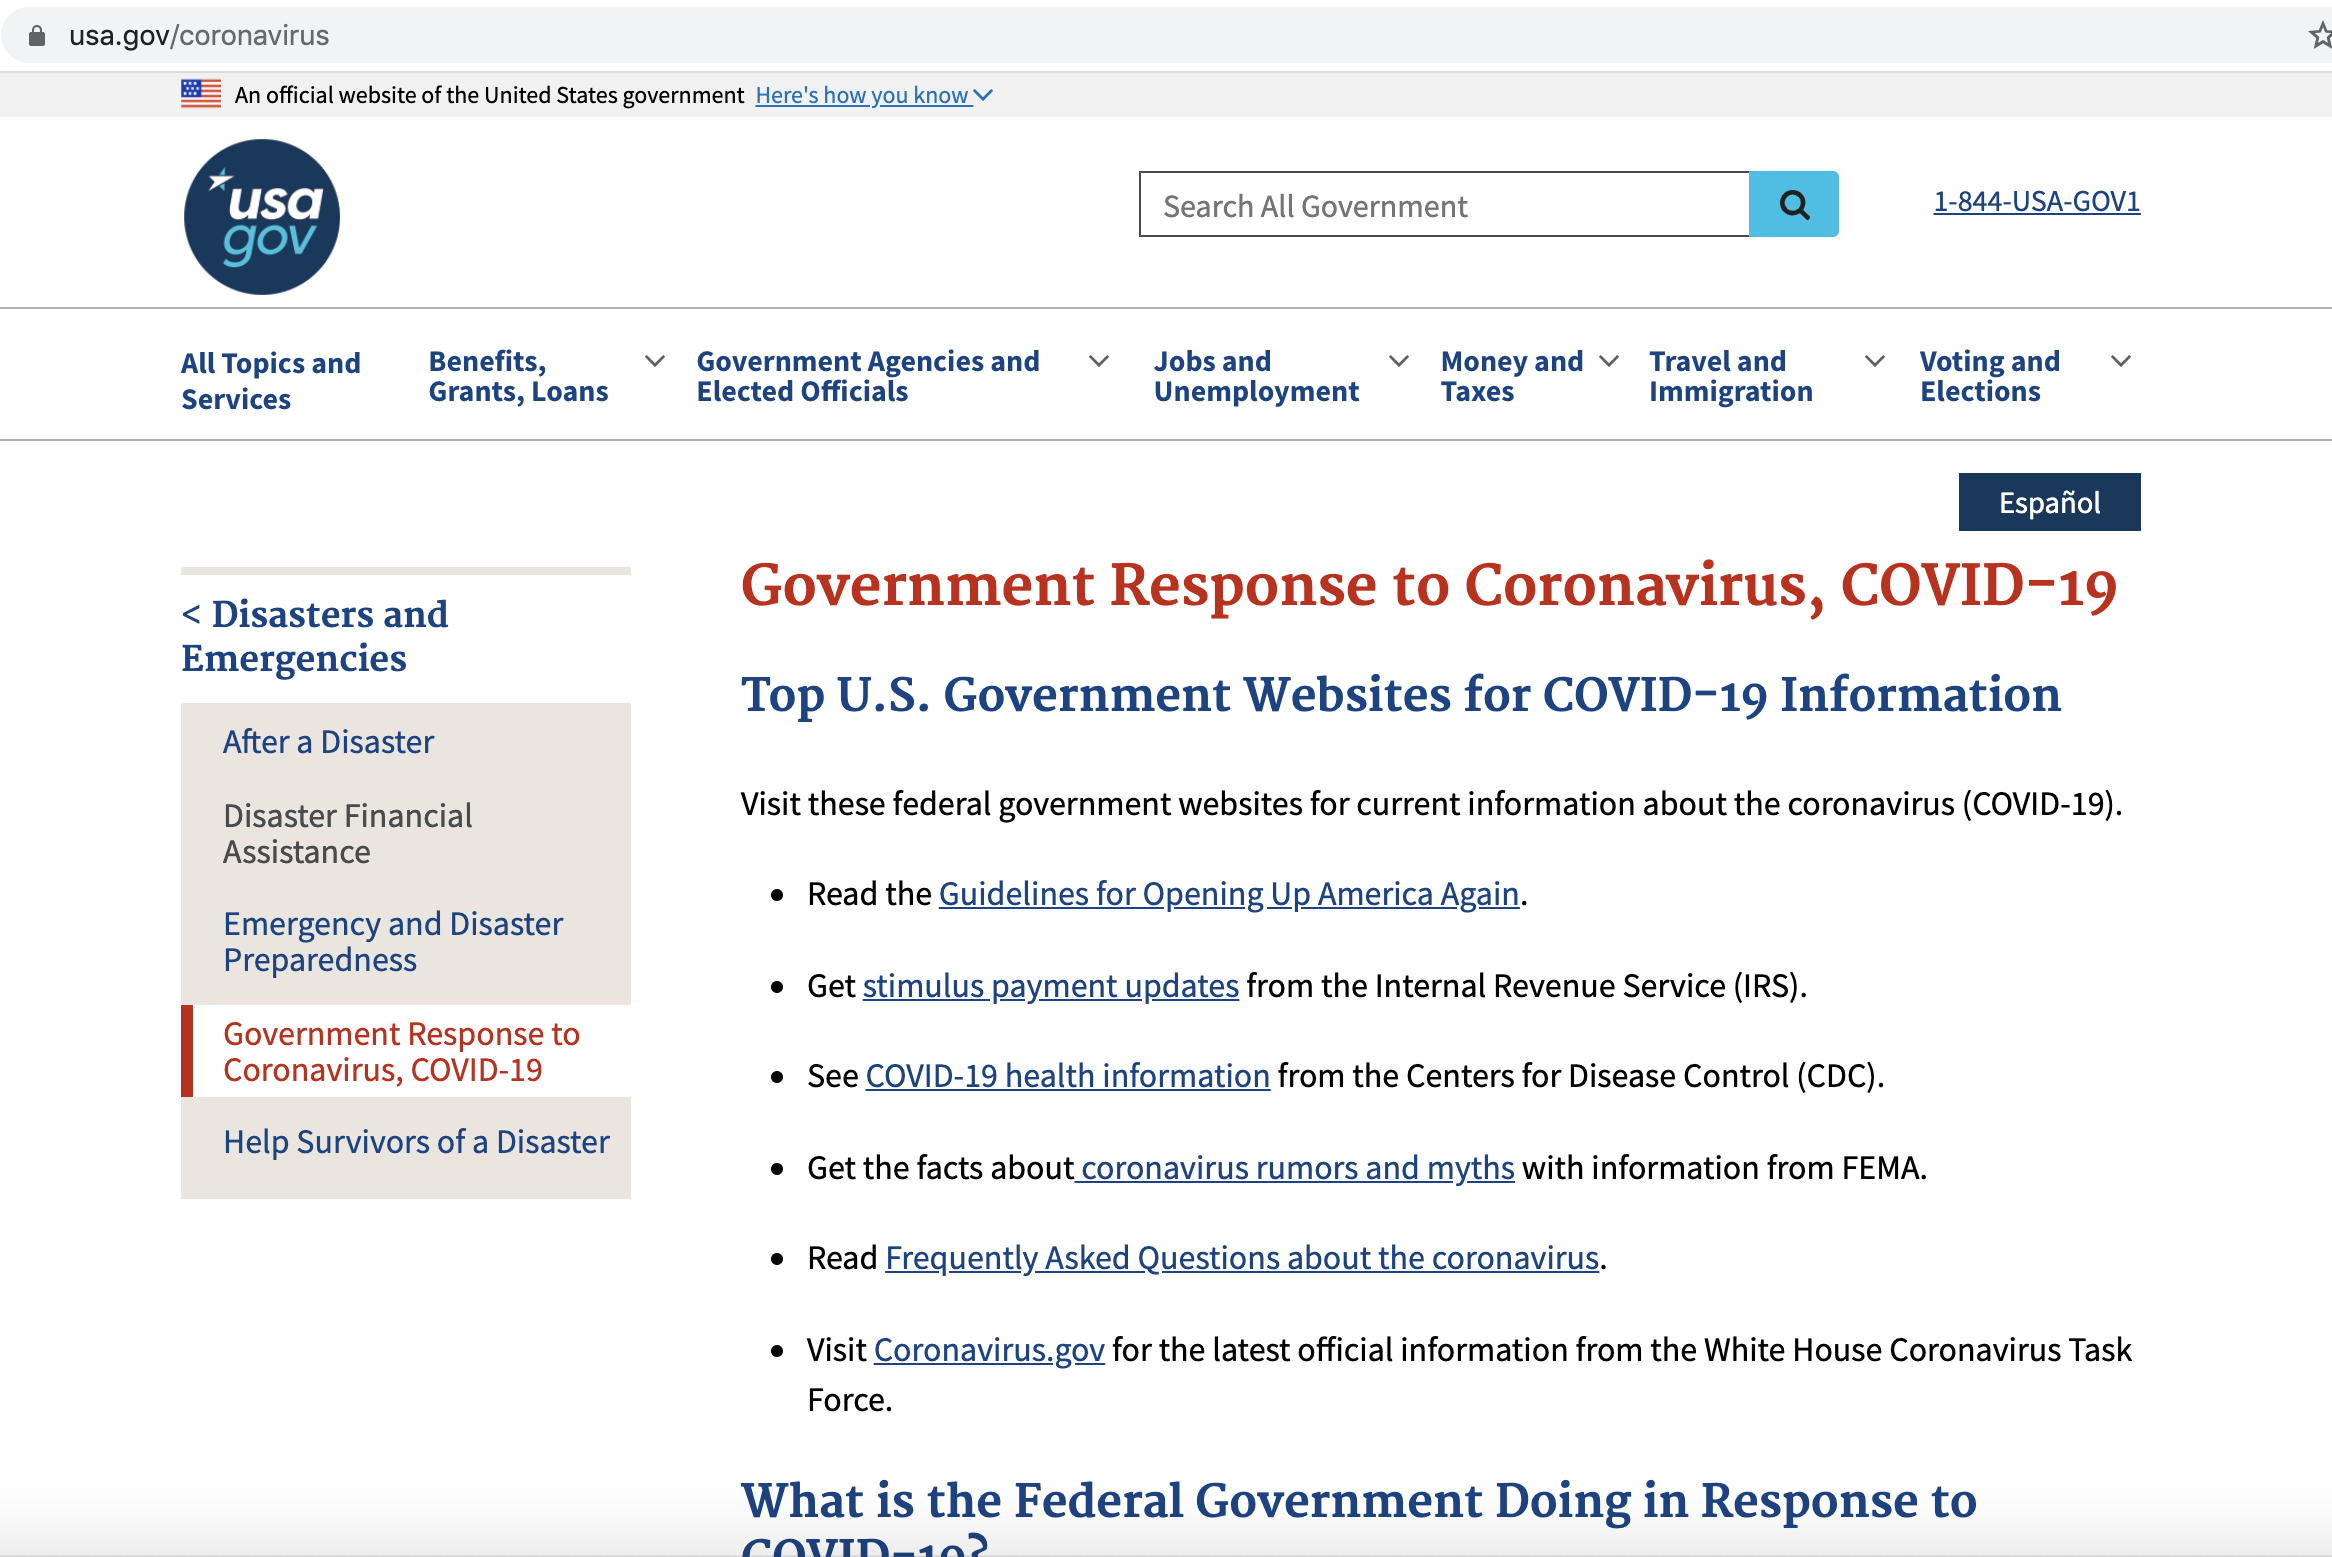 How USA.gov Is Making Its COVID-19 Content Easier to Find